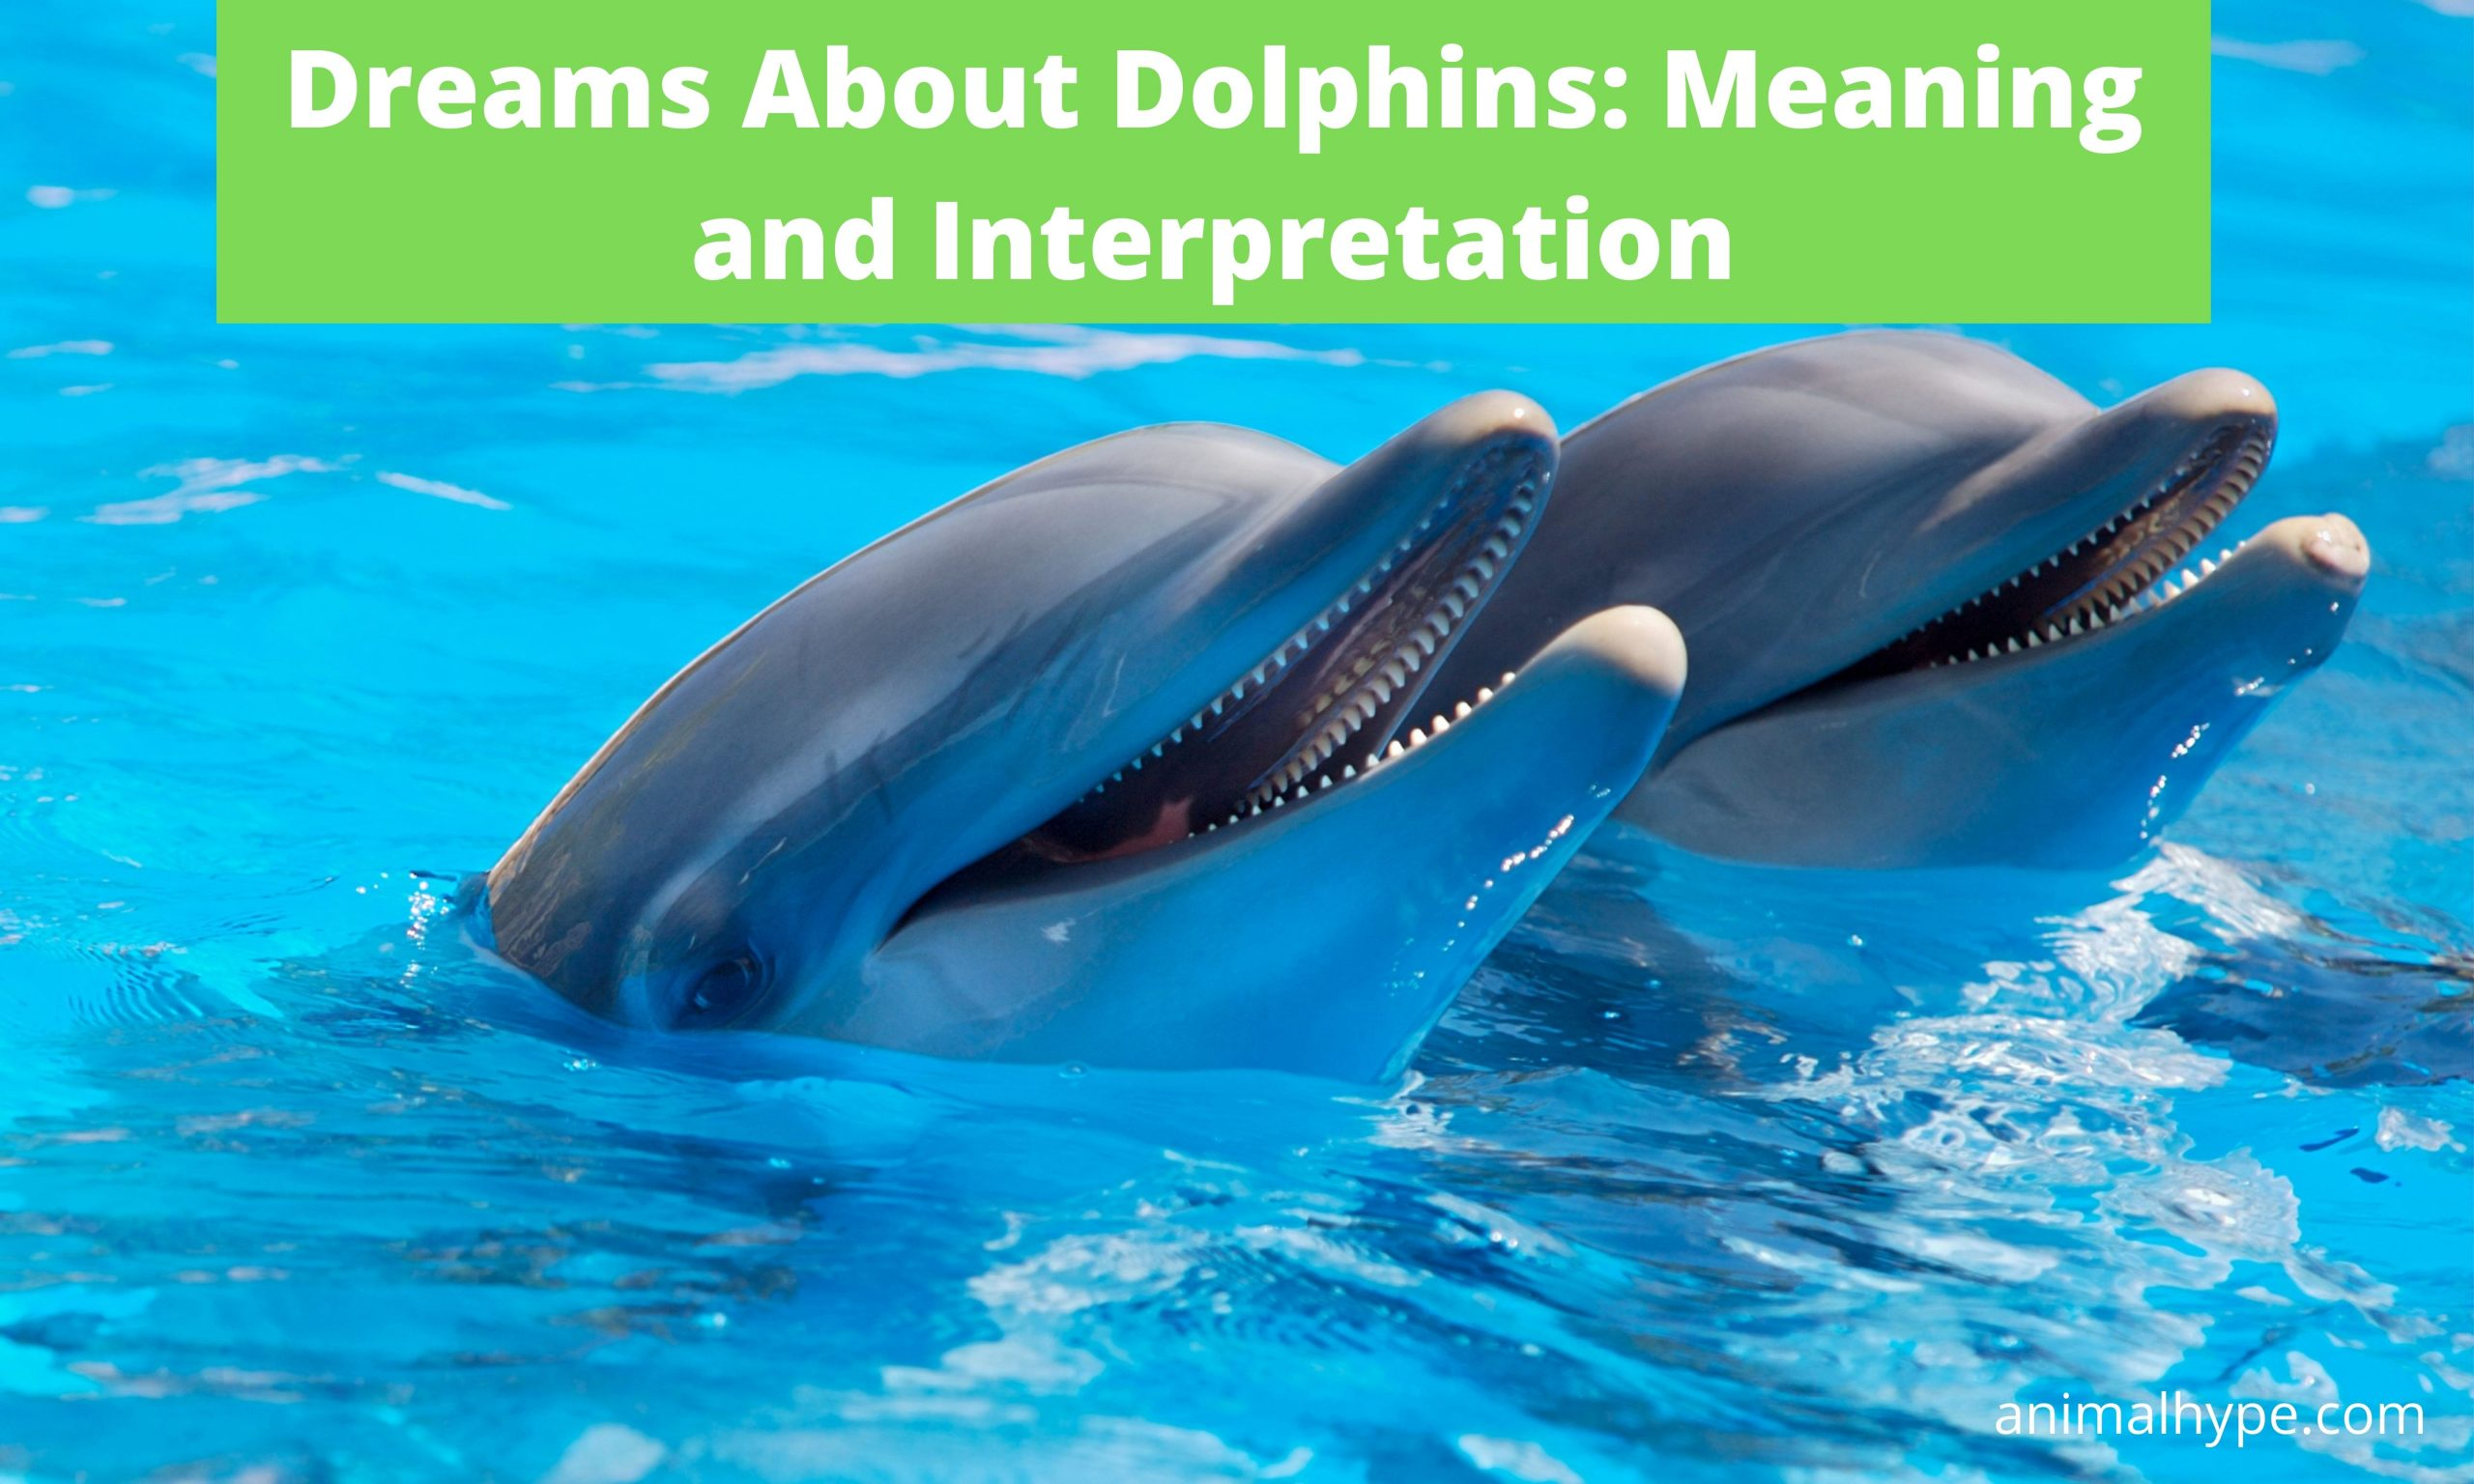 Dreams about dolphins meaning and interpretation